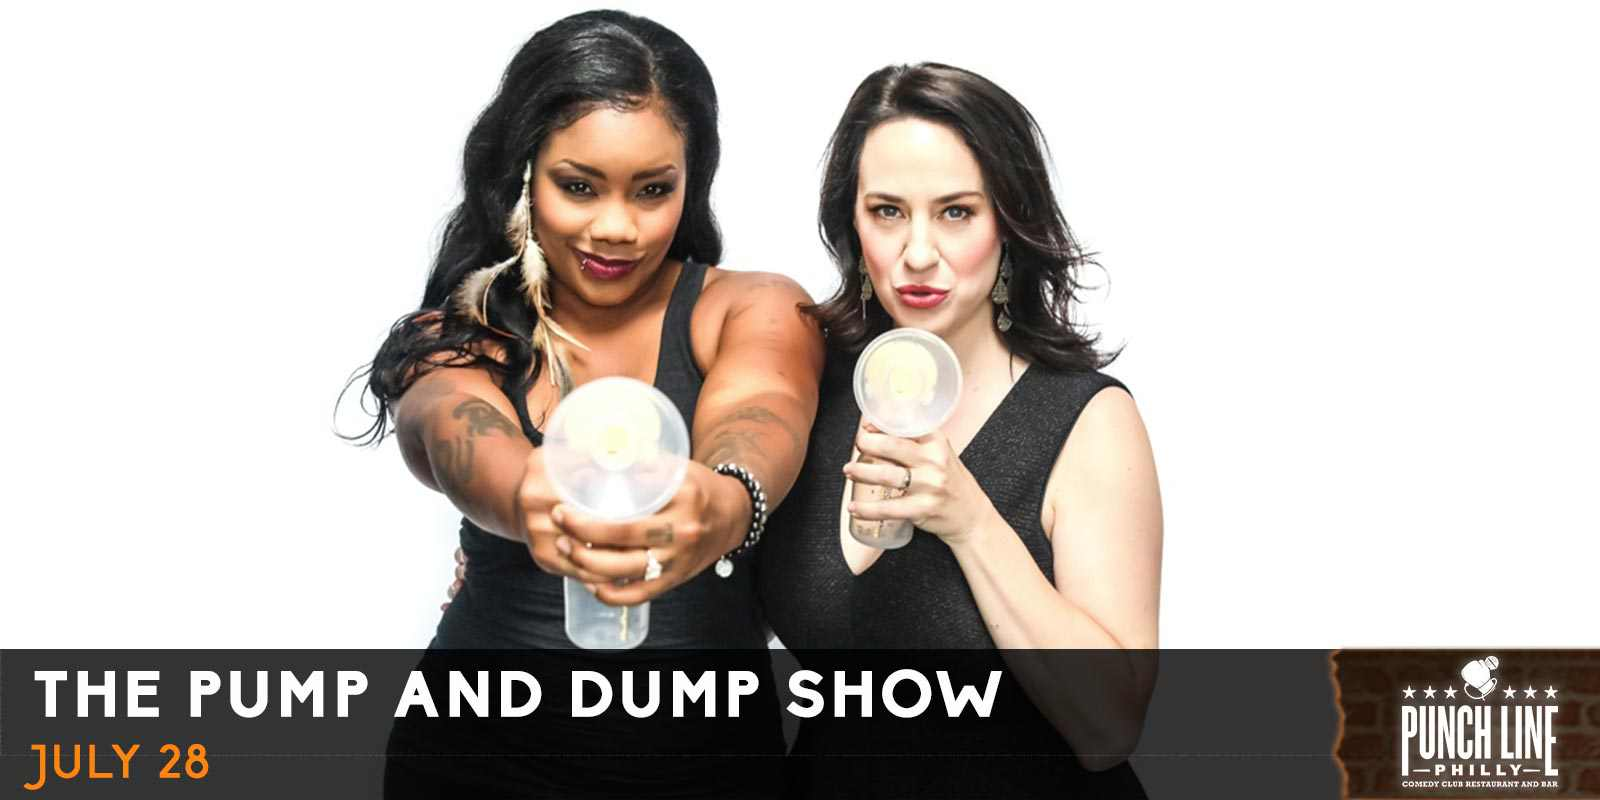 The Pump and Dump Show - RESCHEDULED